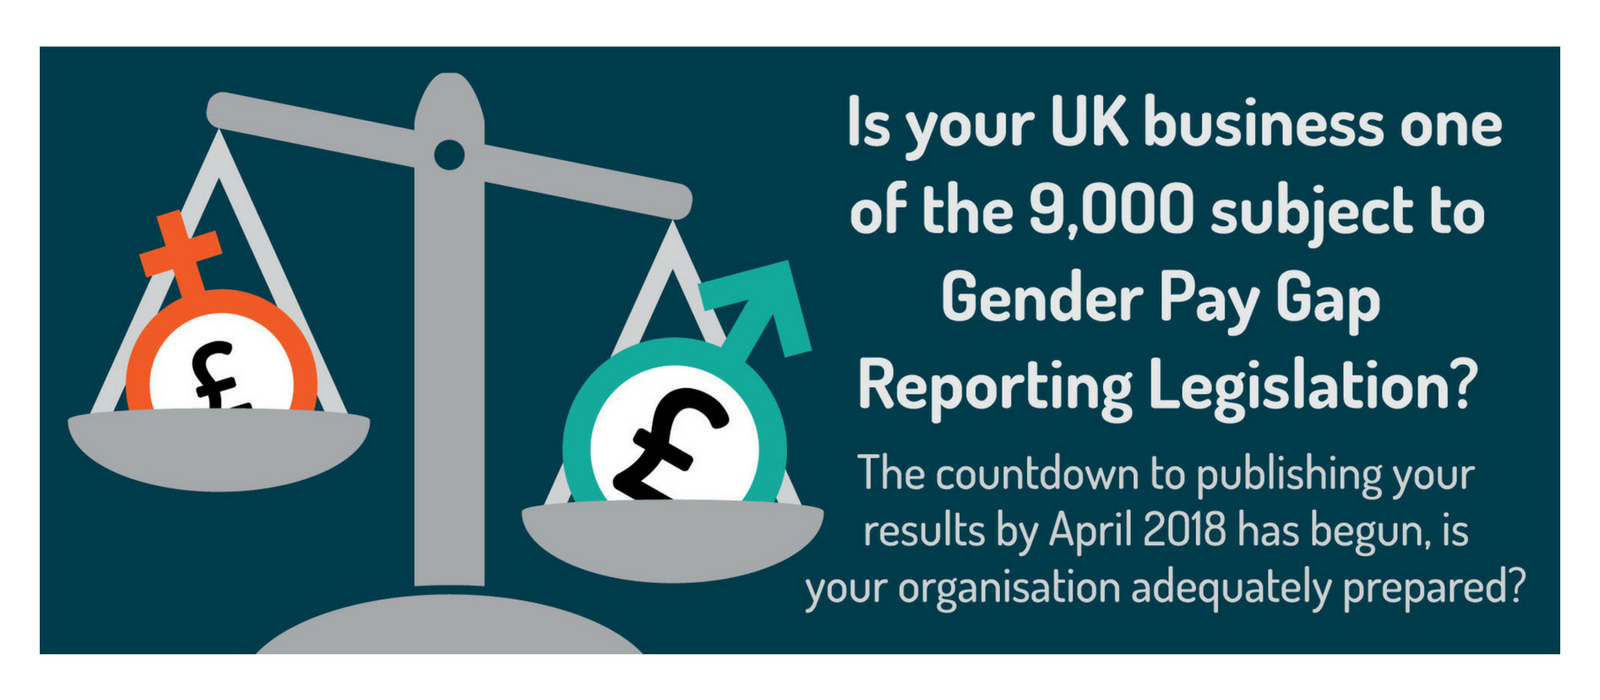 Is your UK business one of the 9000 subject to gender pay gap reporting legislation?